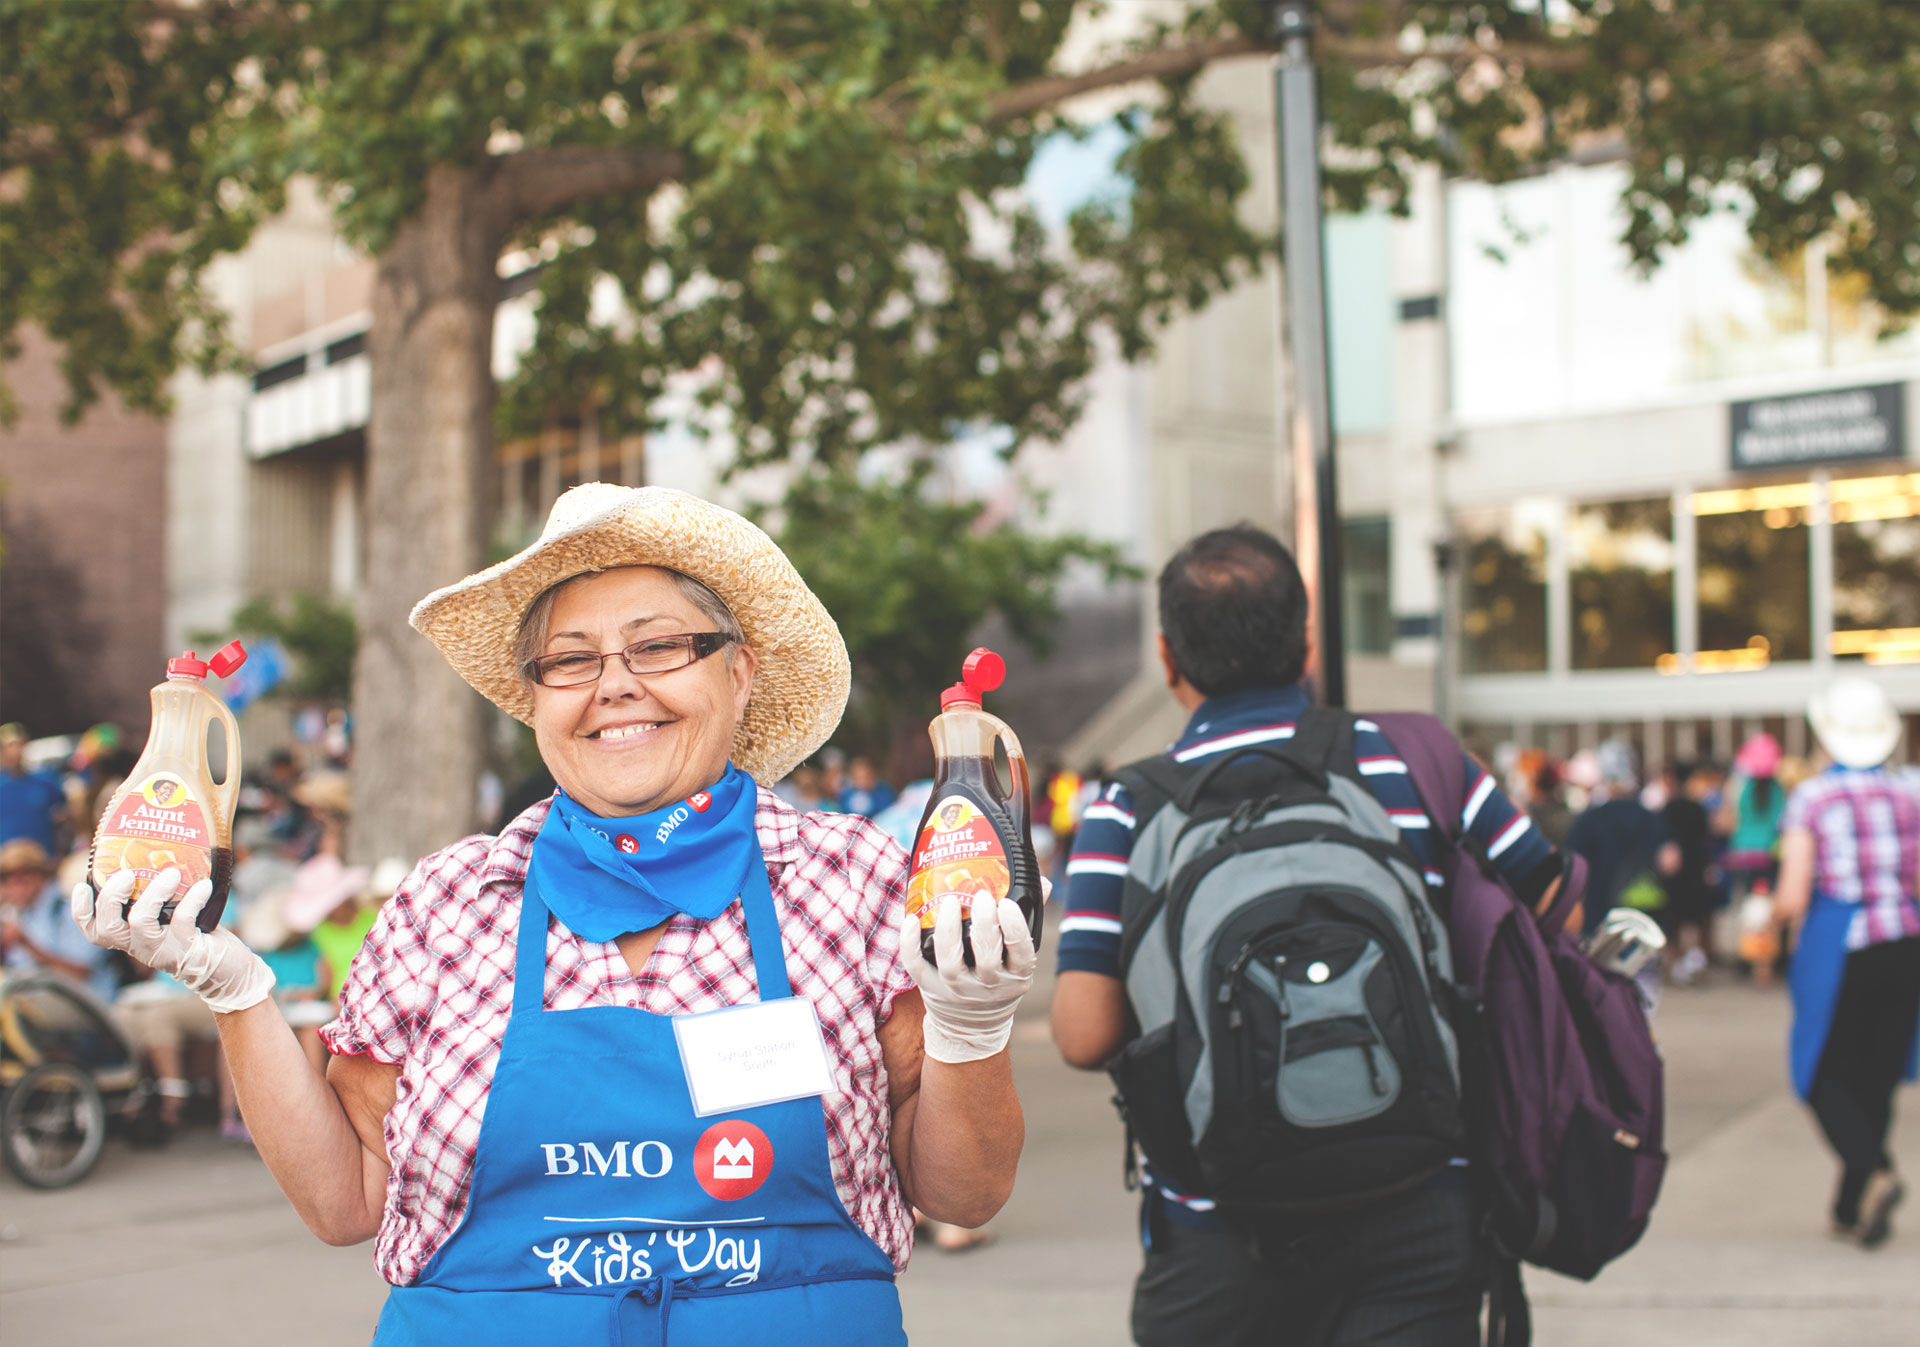 BMO Kids' Day is just one day to save money at the Calgary Stampede.